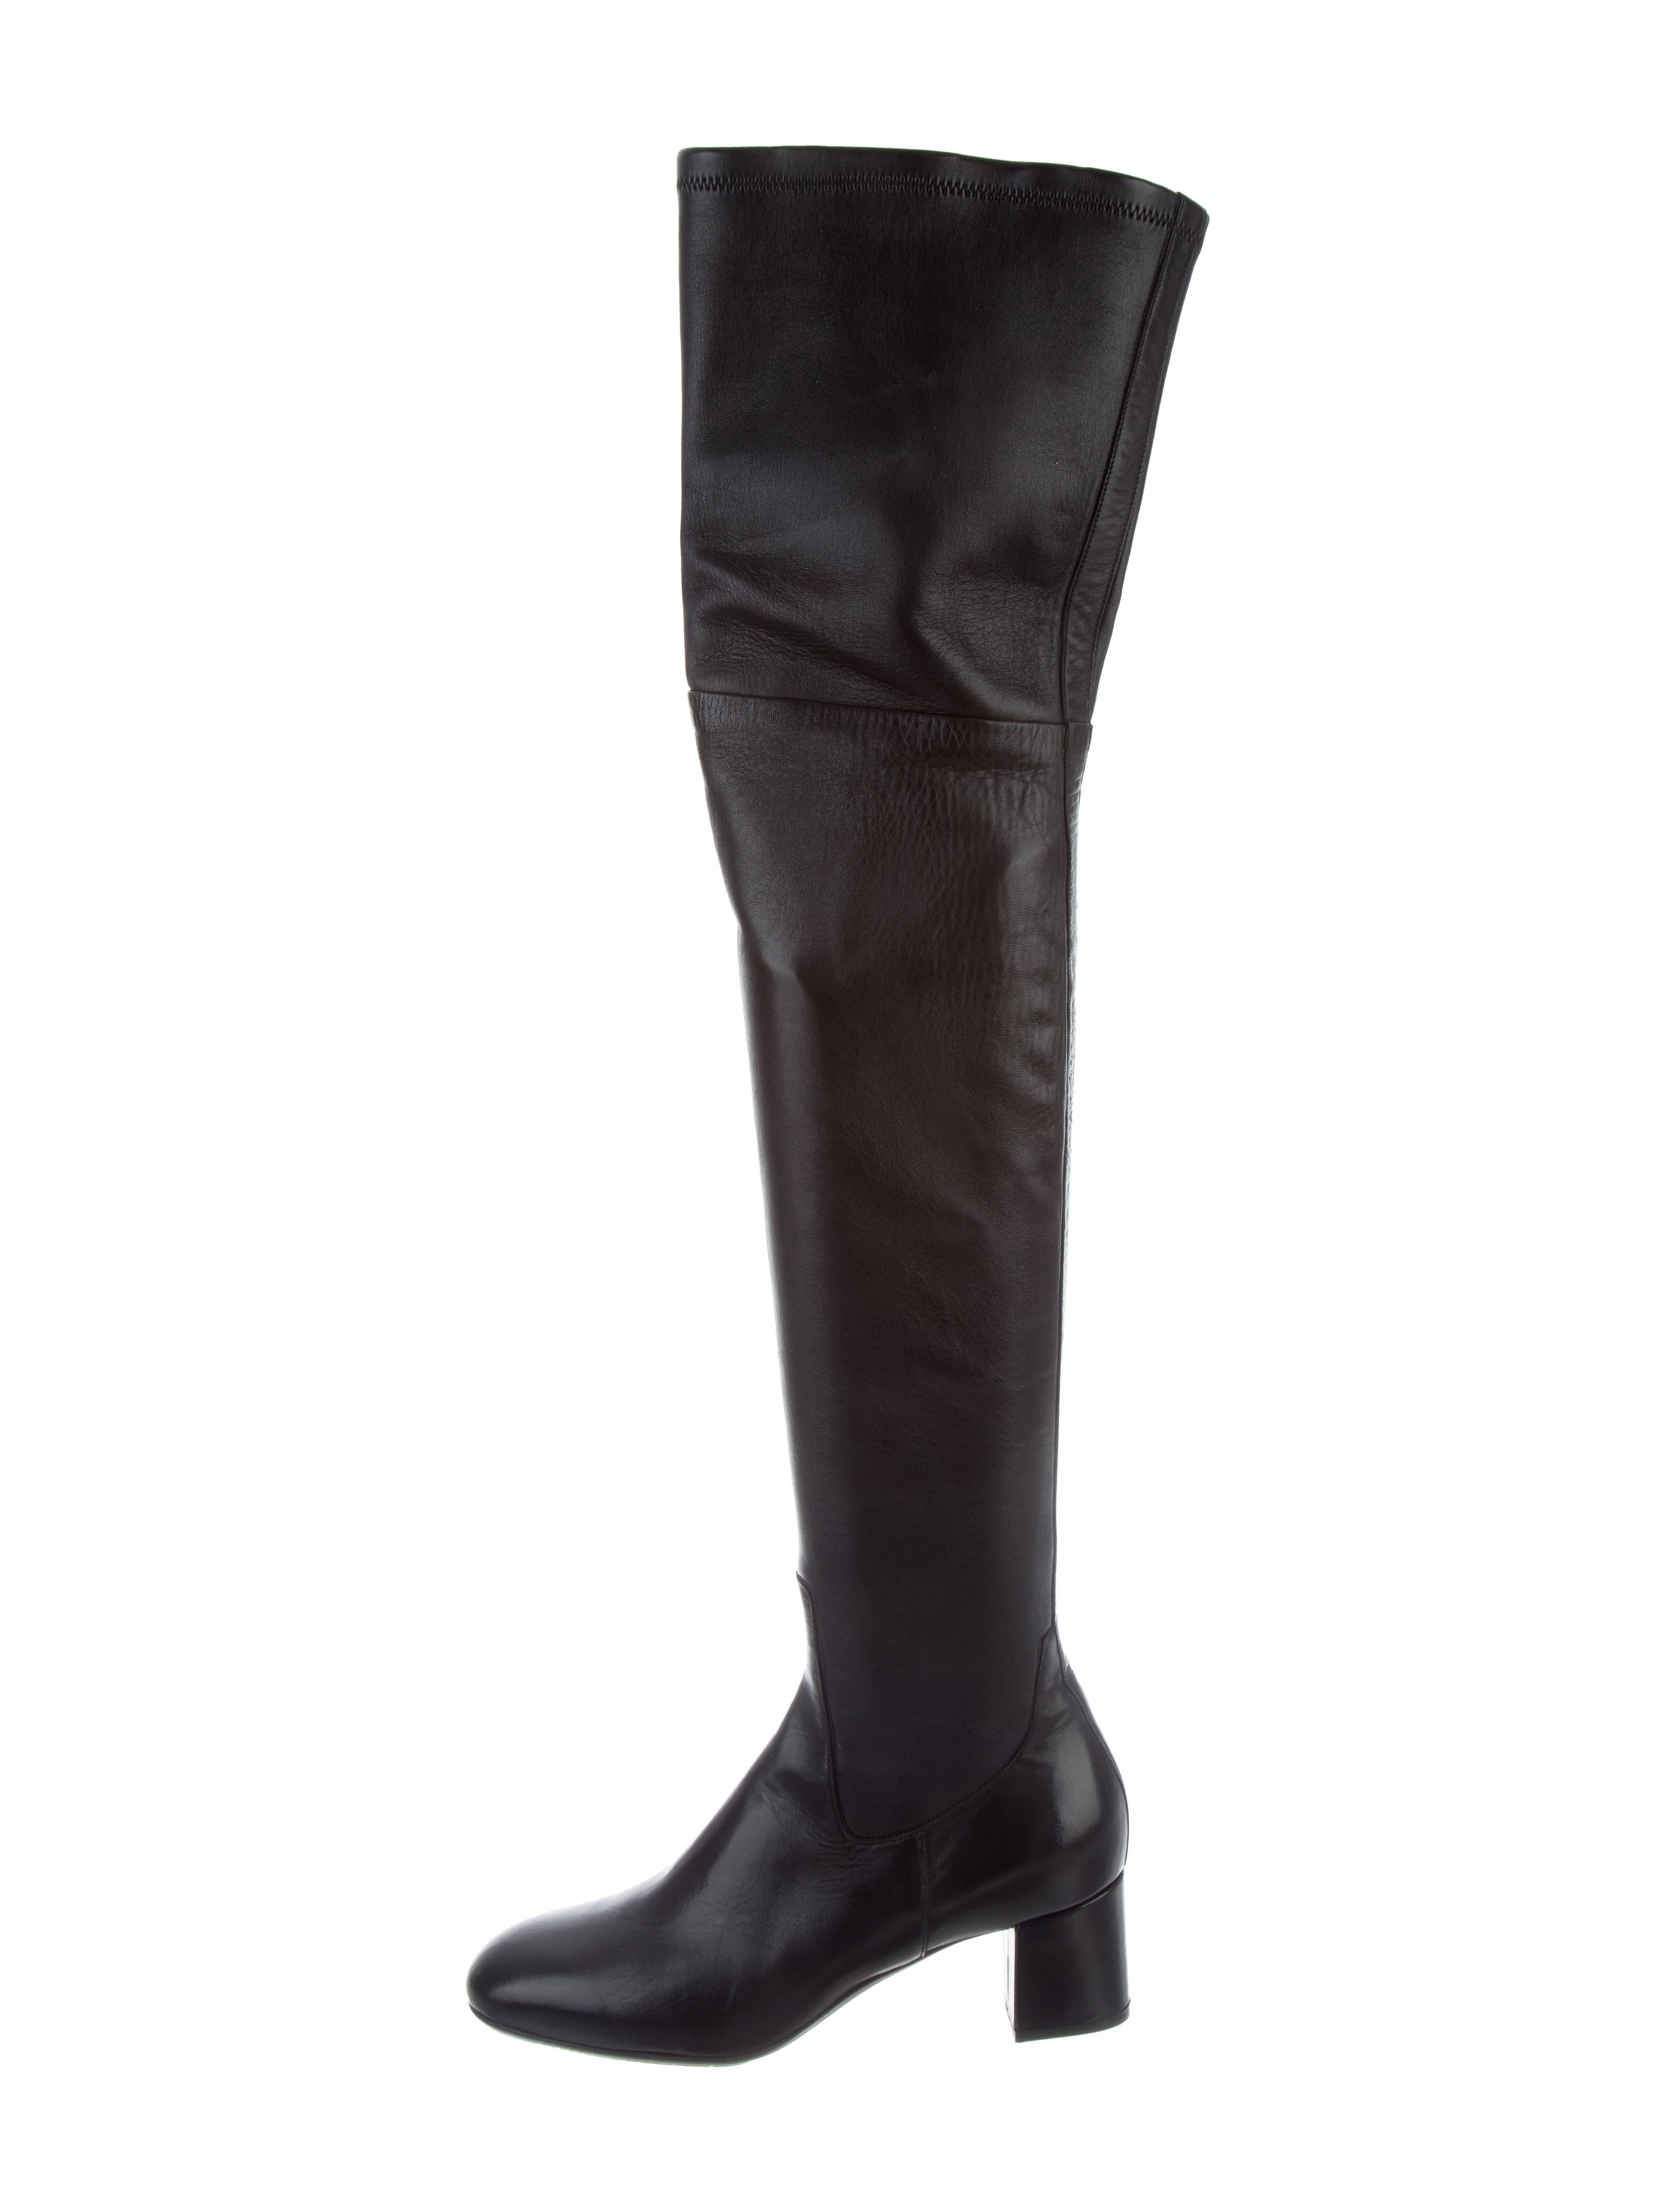 Santoni Leather Over-The-Knee Boots w/ Tags low shipping fee online buy cheap prices 0lMsozSms